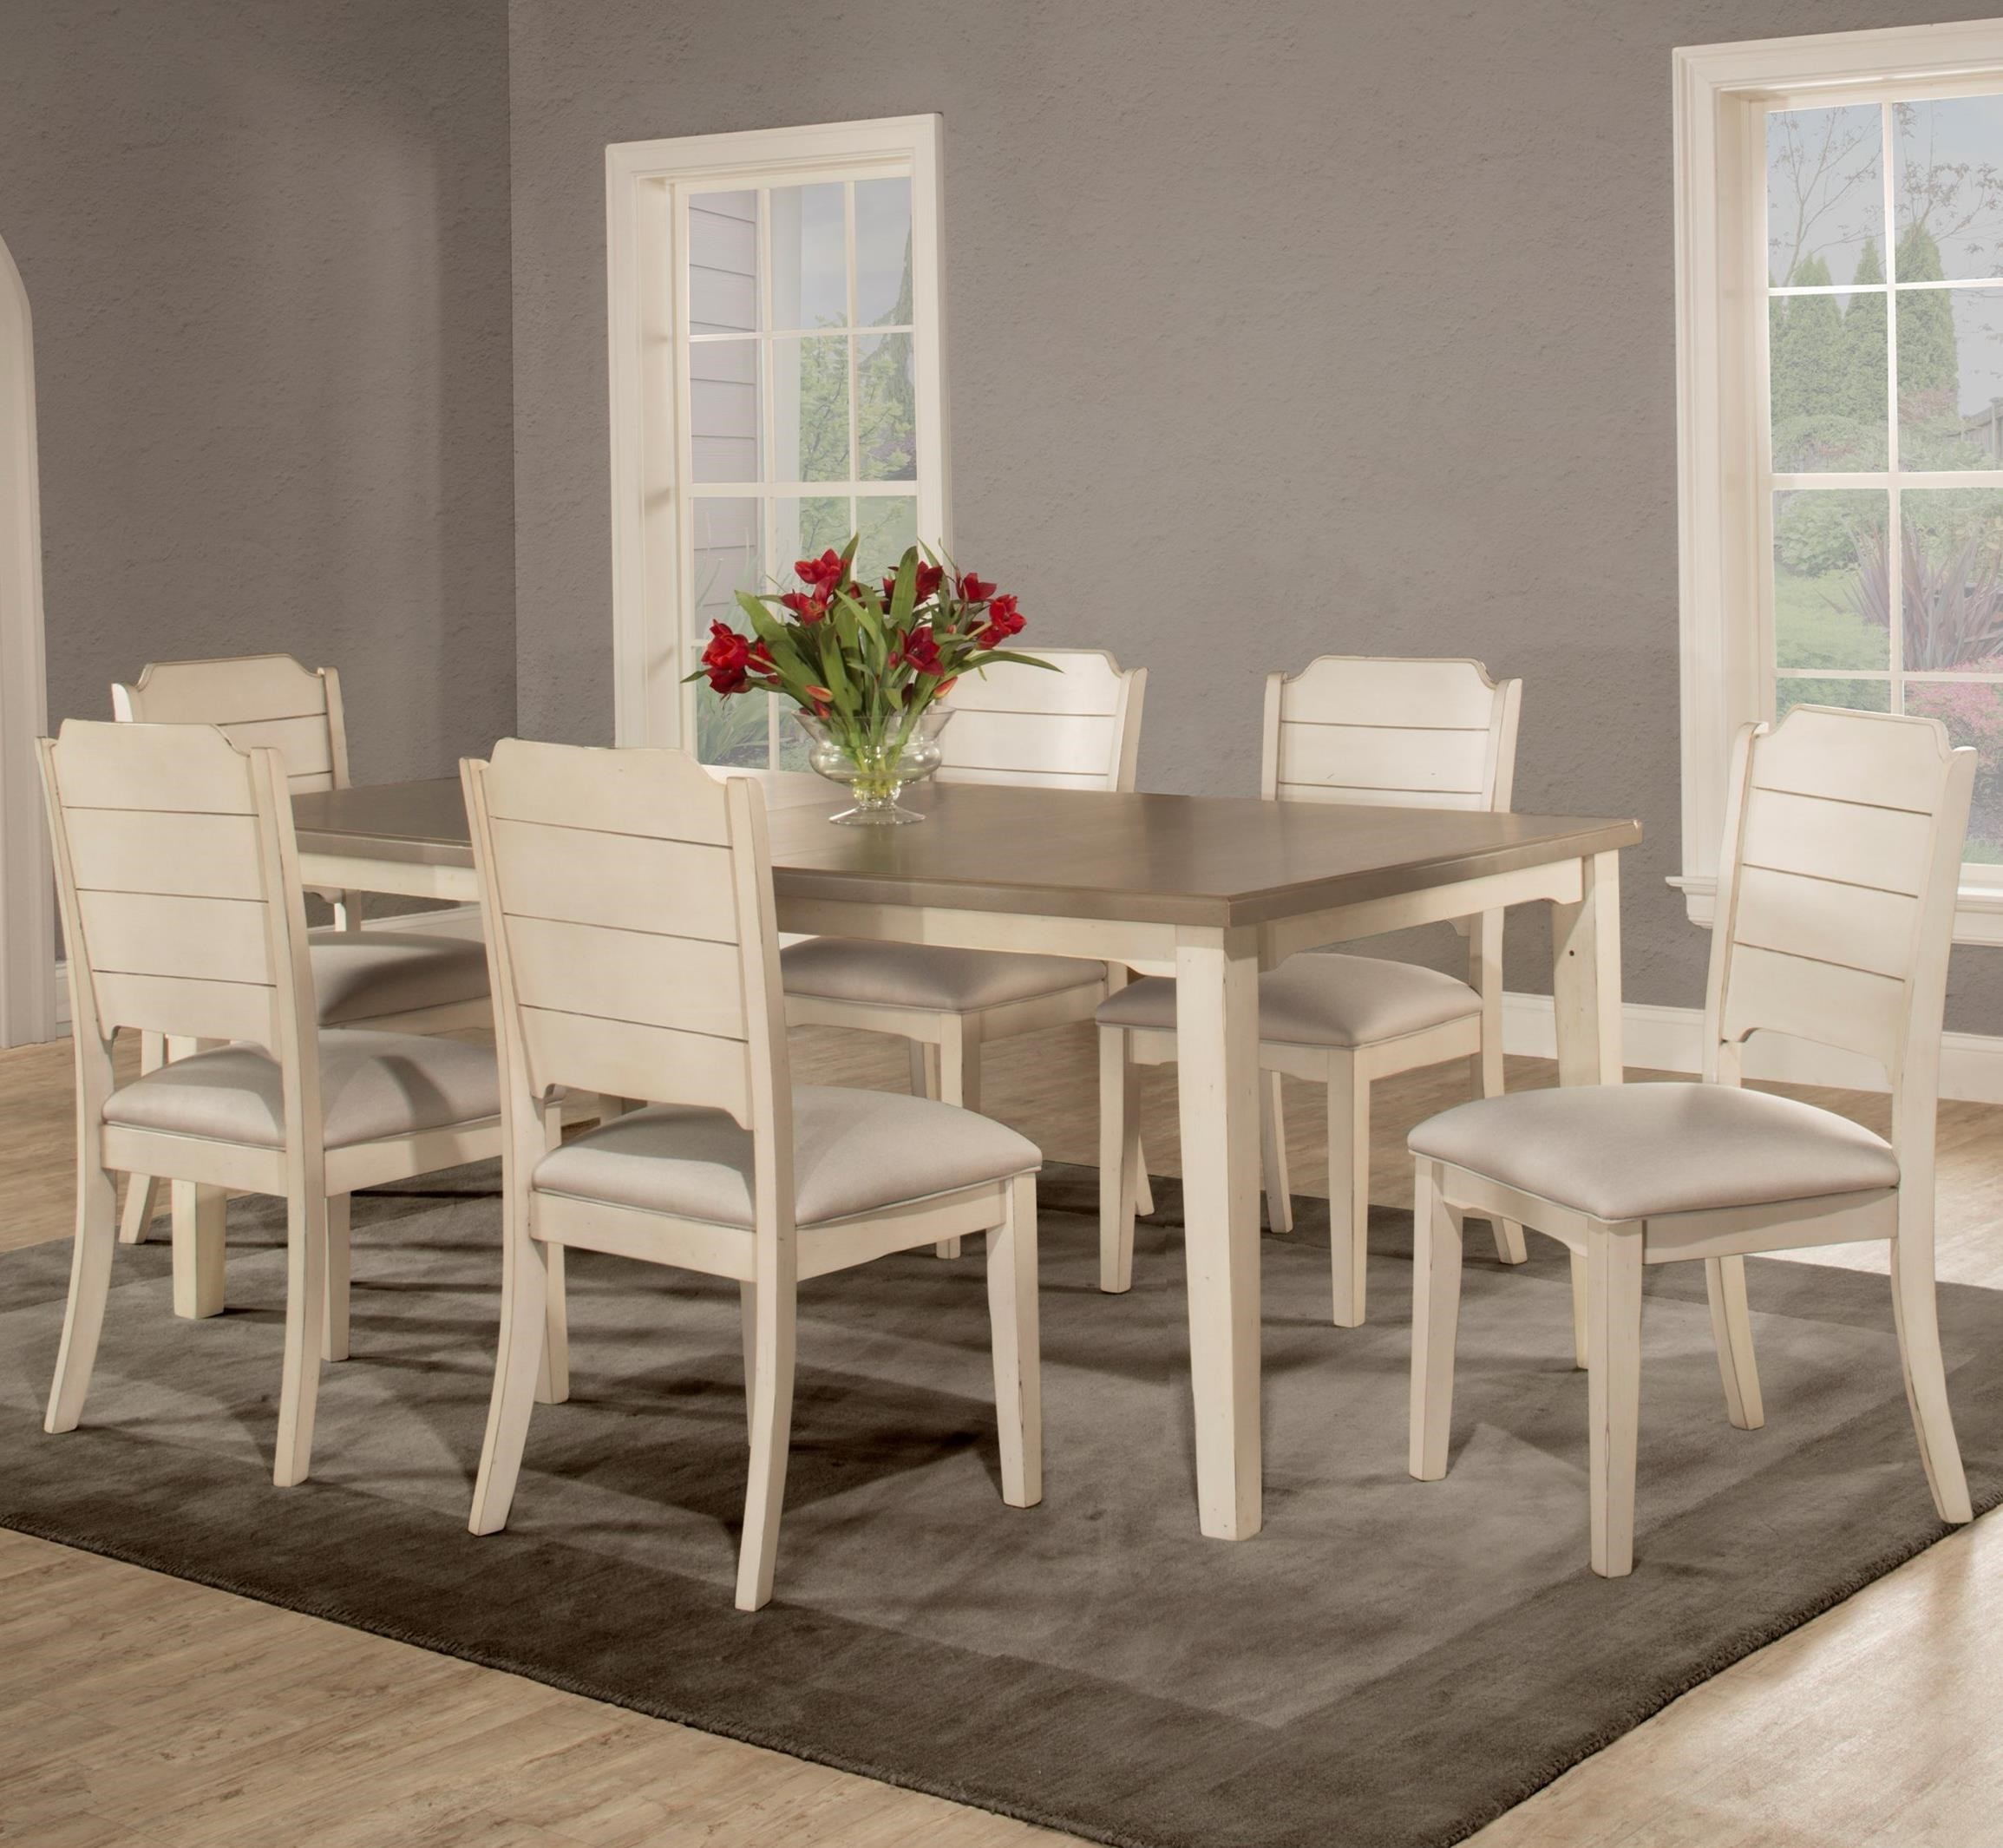 7-Piece Dining Set with Rectangle Table